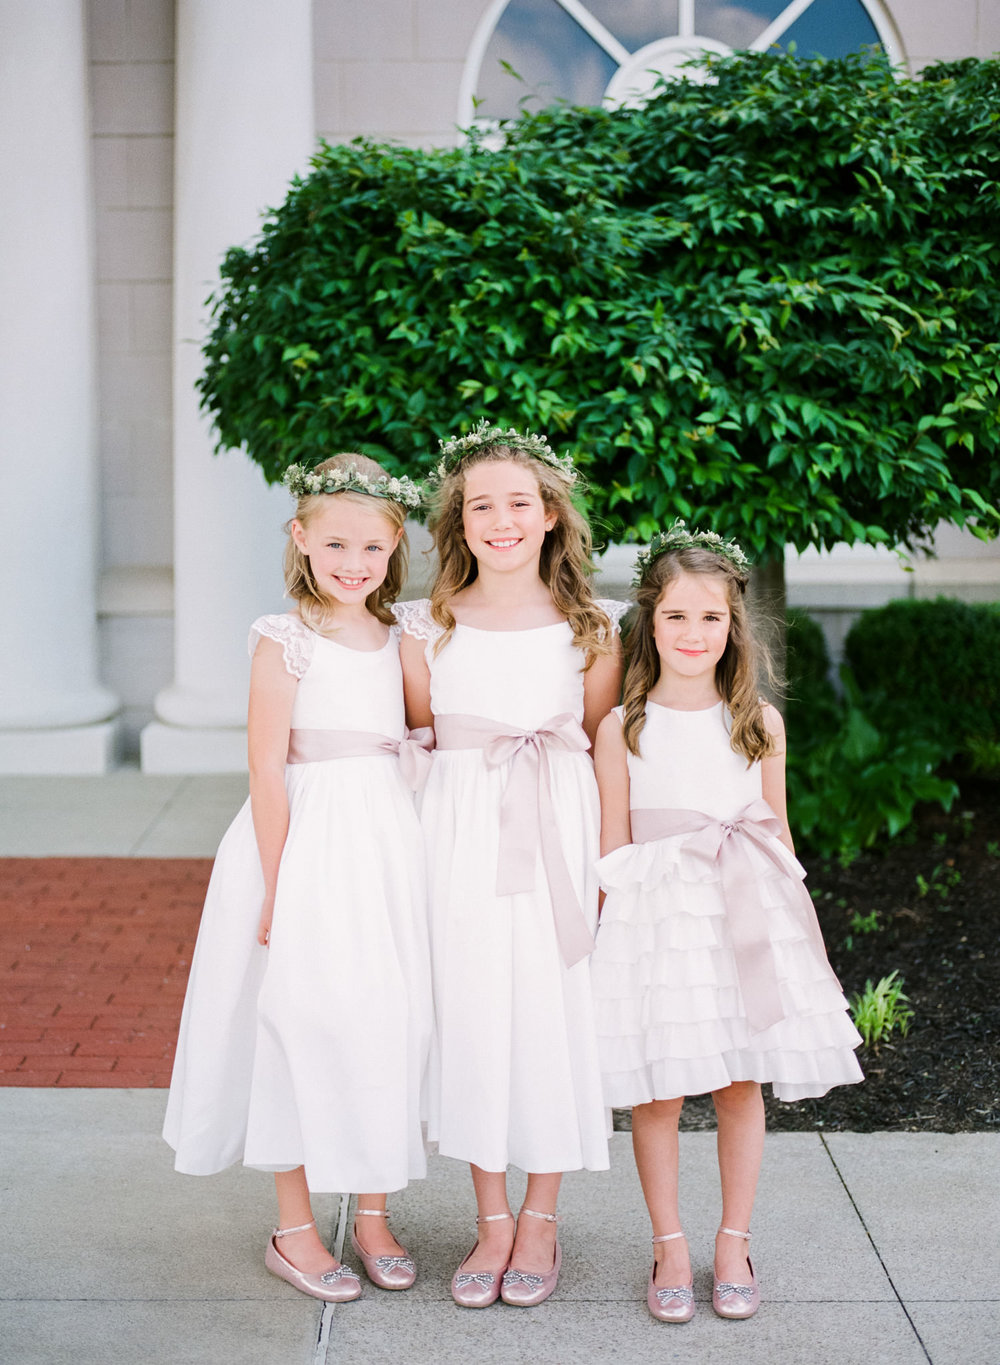 Image of flower girls taken with Pentax 645nii using a 75mm FA f/2.8 lens